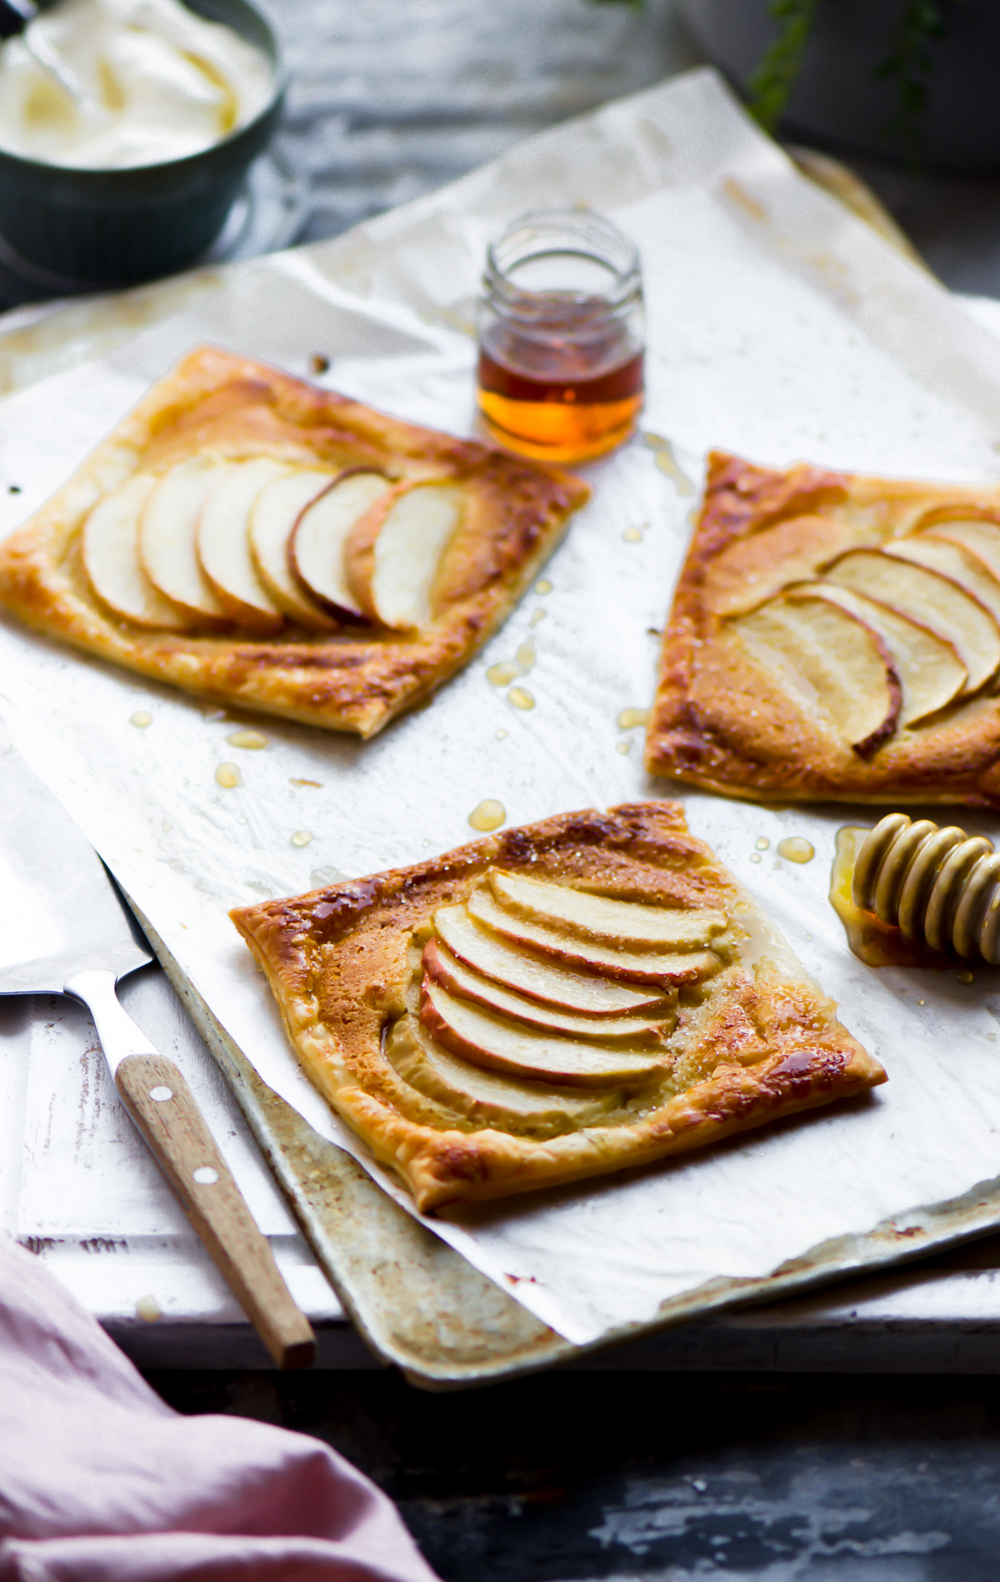 Having this warm flaky apple frangipane tart lined with apple and paired with glorious almond filling and served with double cream is simply irresistible.